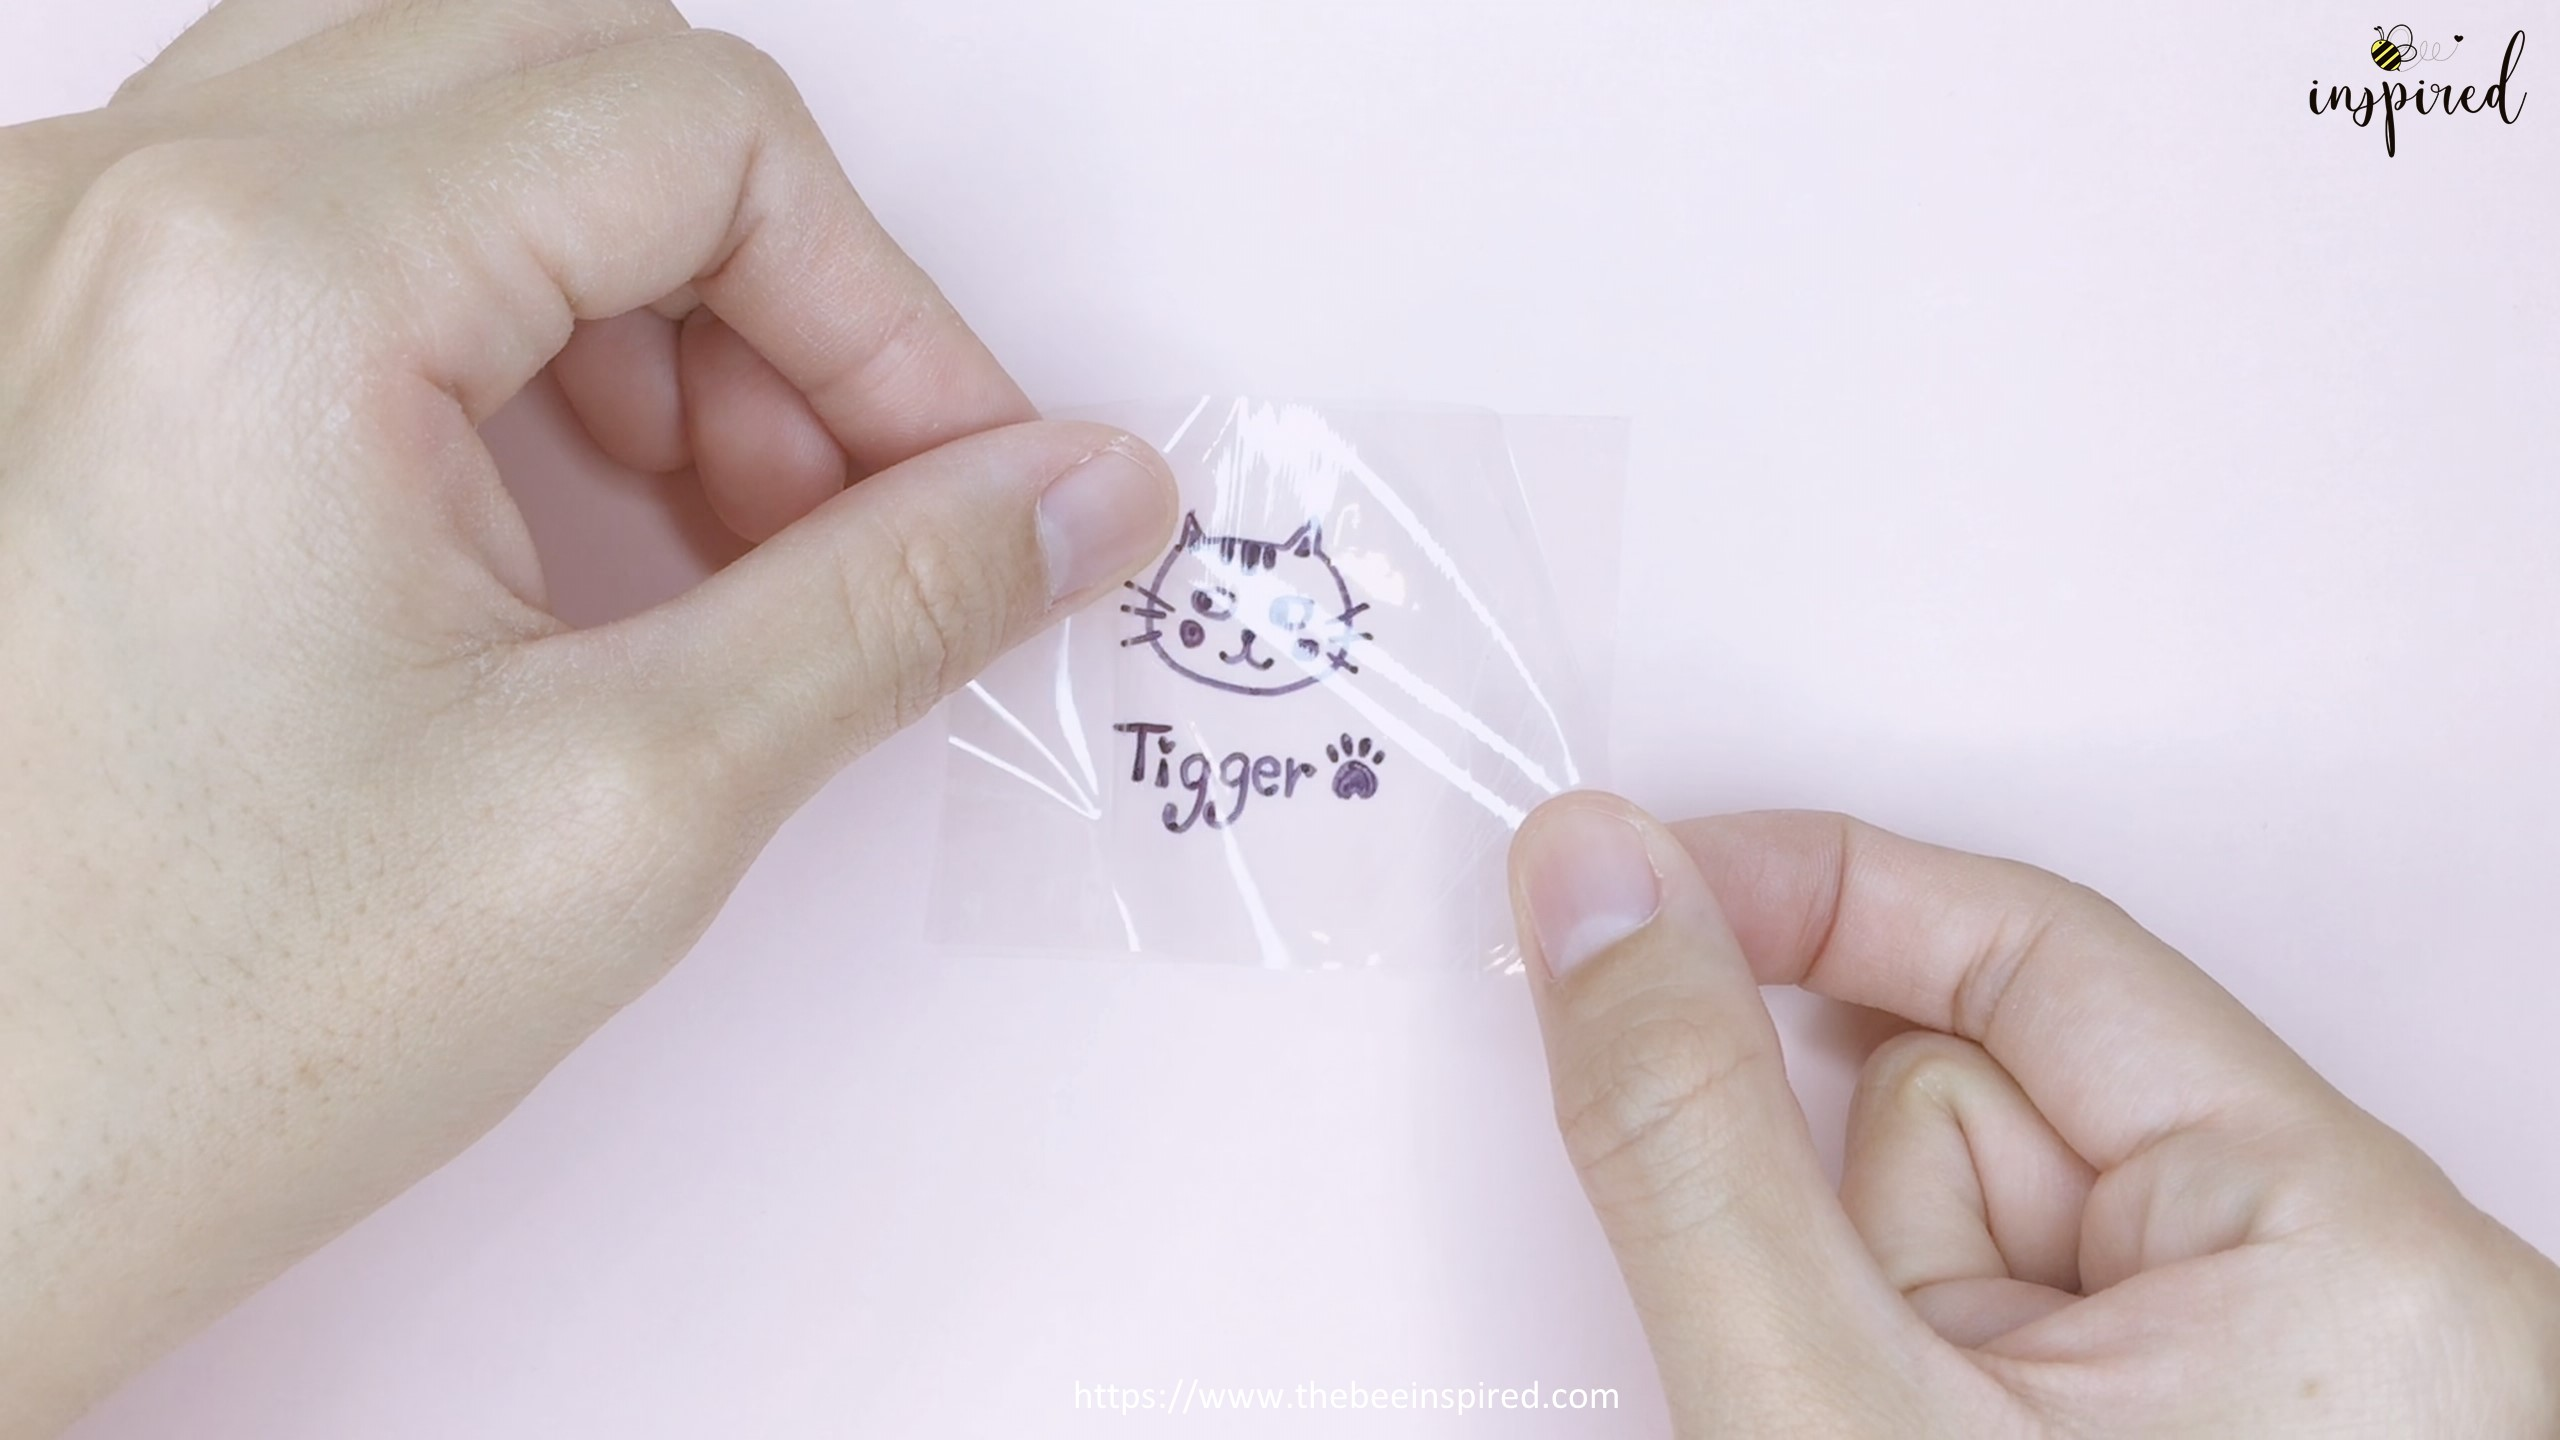 How to Make Clear Sticker from My Drawing with Packaging Tape_15